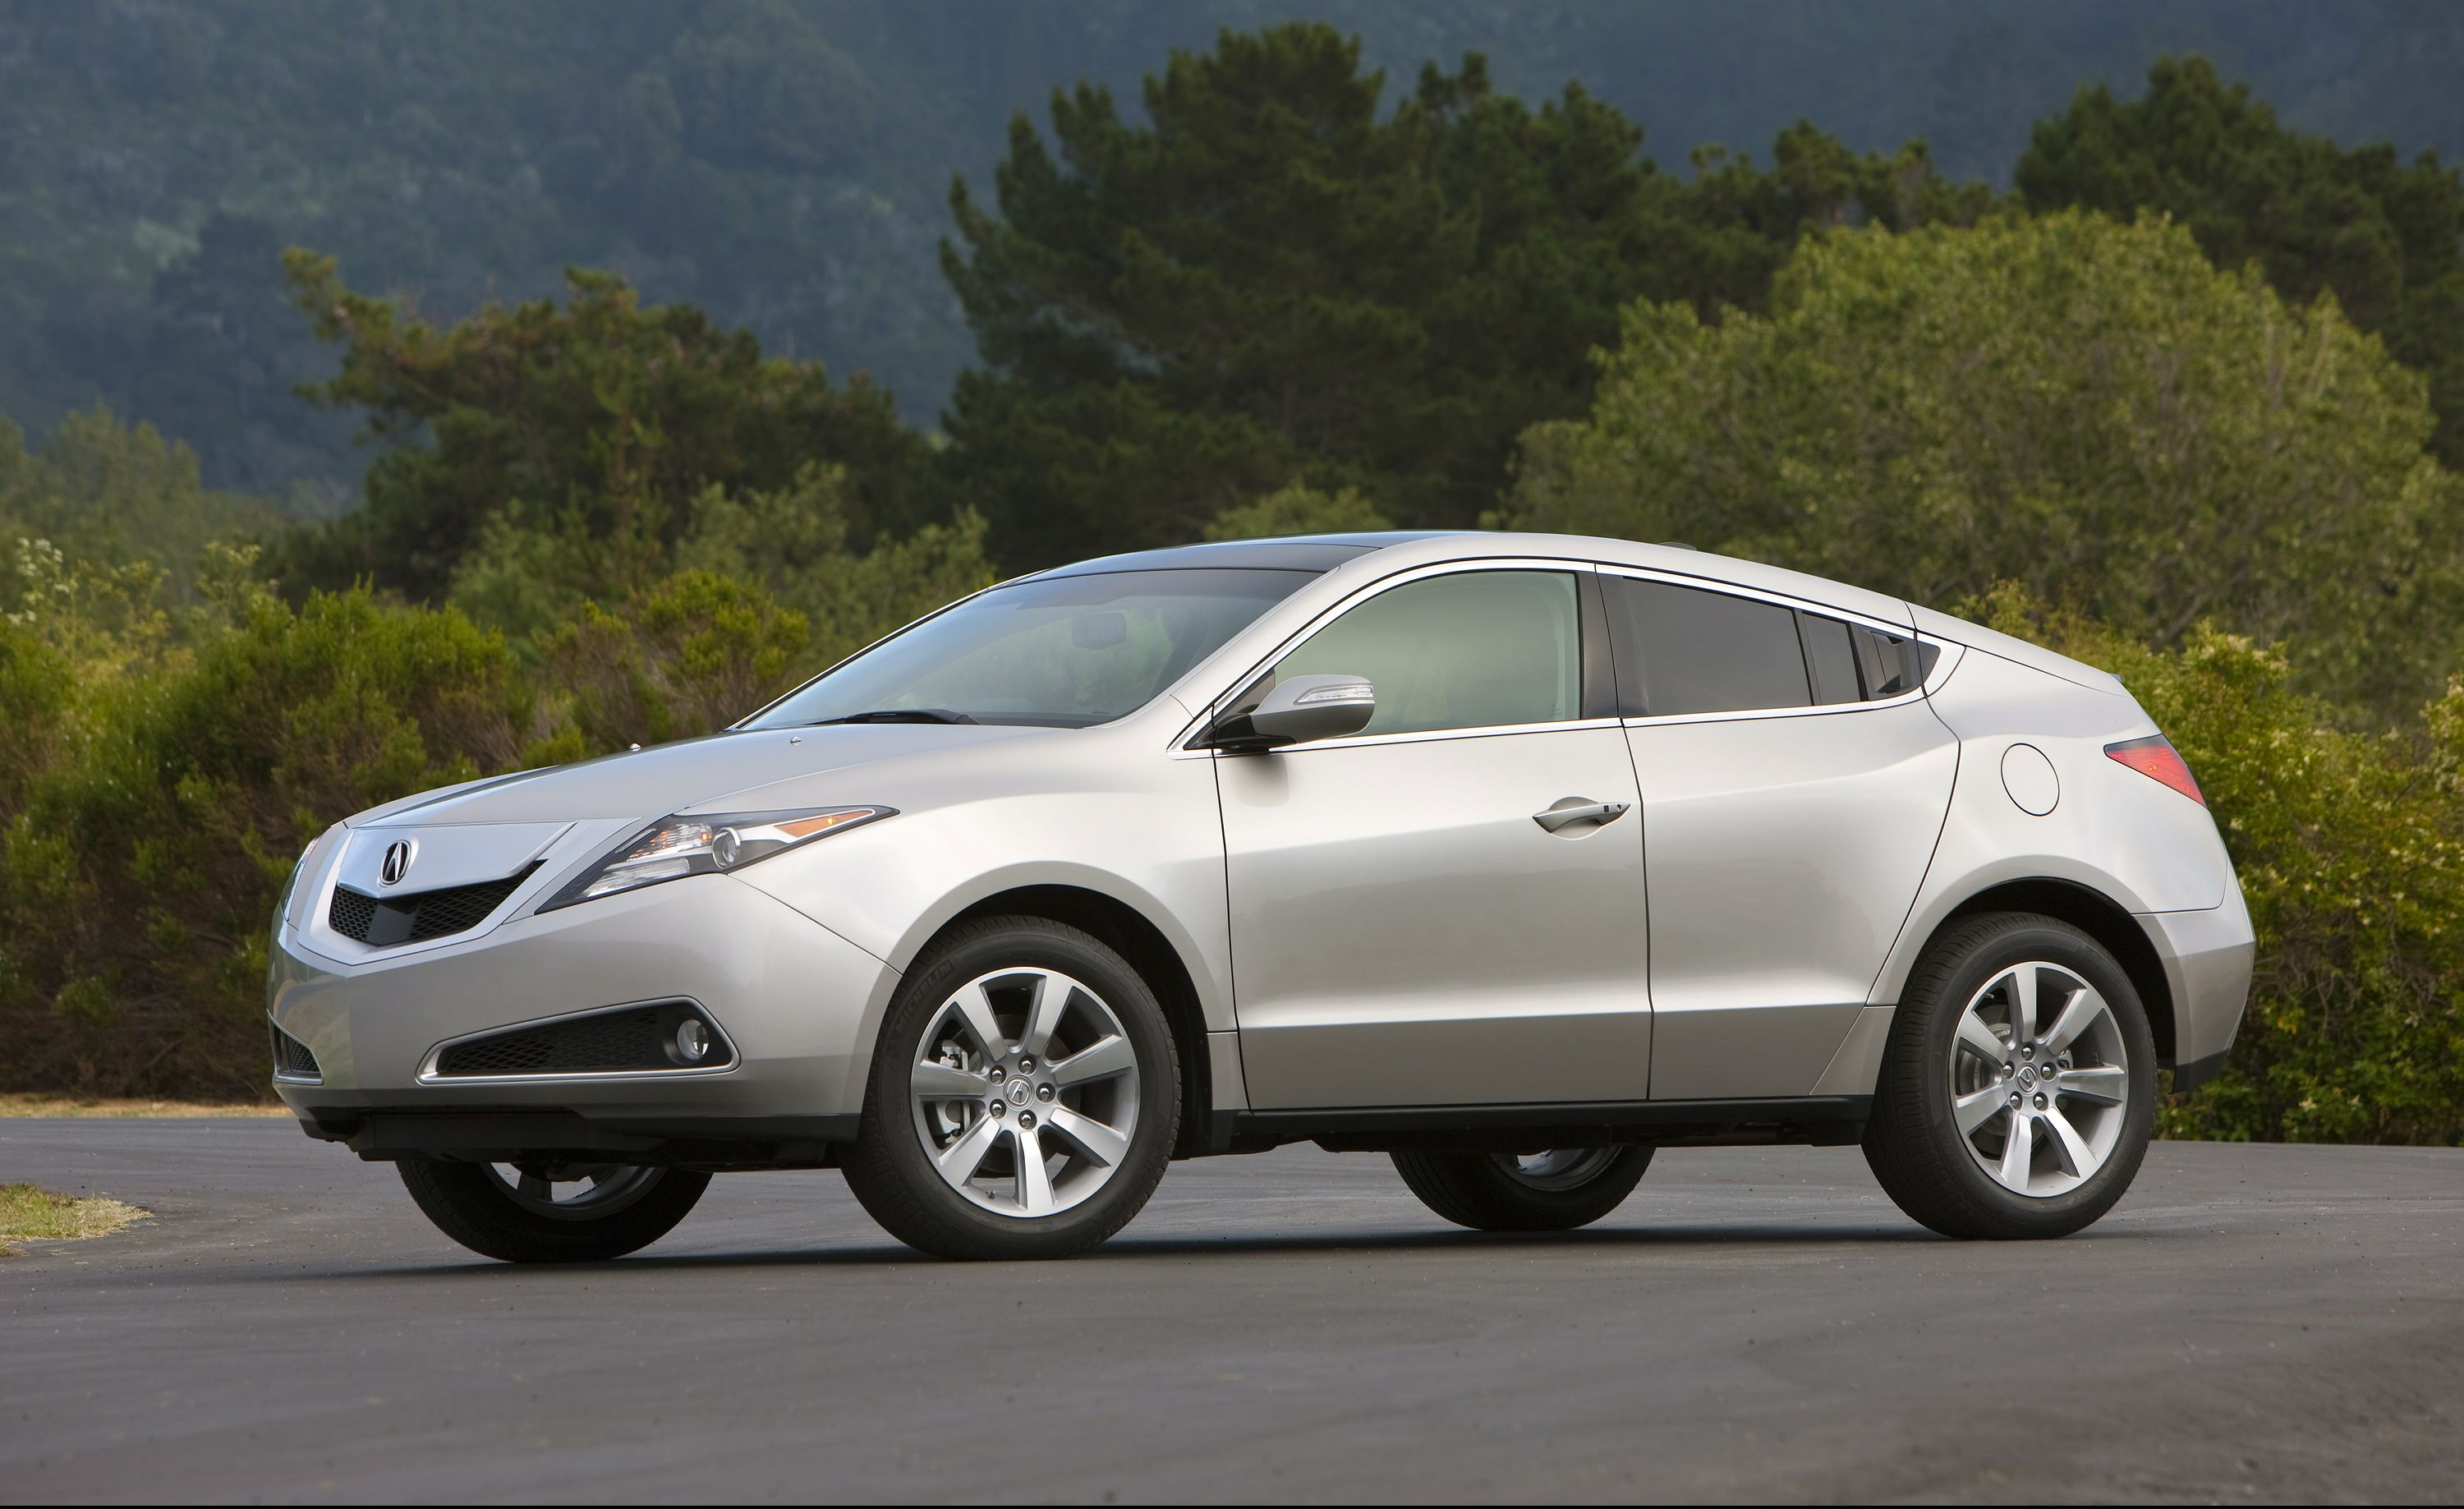 """Acura ZDX (2010–2013) Our original road test of the 2010 Acura ZDX begins: """"We're tempted to believe that ZDX stands for 'zero demand expected.'"""" Our clairvoyance proved accurate, and the fastbacked, bubblebutted, and birdnosed ZDX found few takers and lasted just three years in the U.S. Acura put this chopped-top version of its popular MDX out of misery in 2013, ironically right as today's """" crossover coupe """" trend, such as it is, was beginning to build steam behind BMW's X6 and the format spread elsewhere in that brand's lineup, as well as Mercedes-Benz's."""